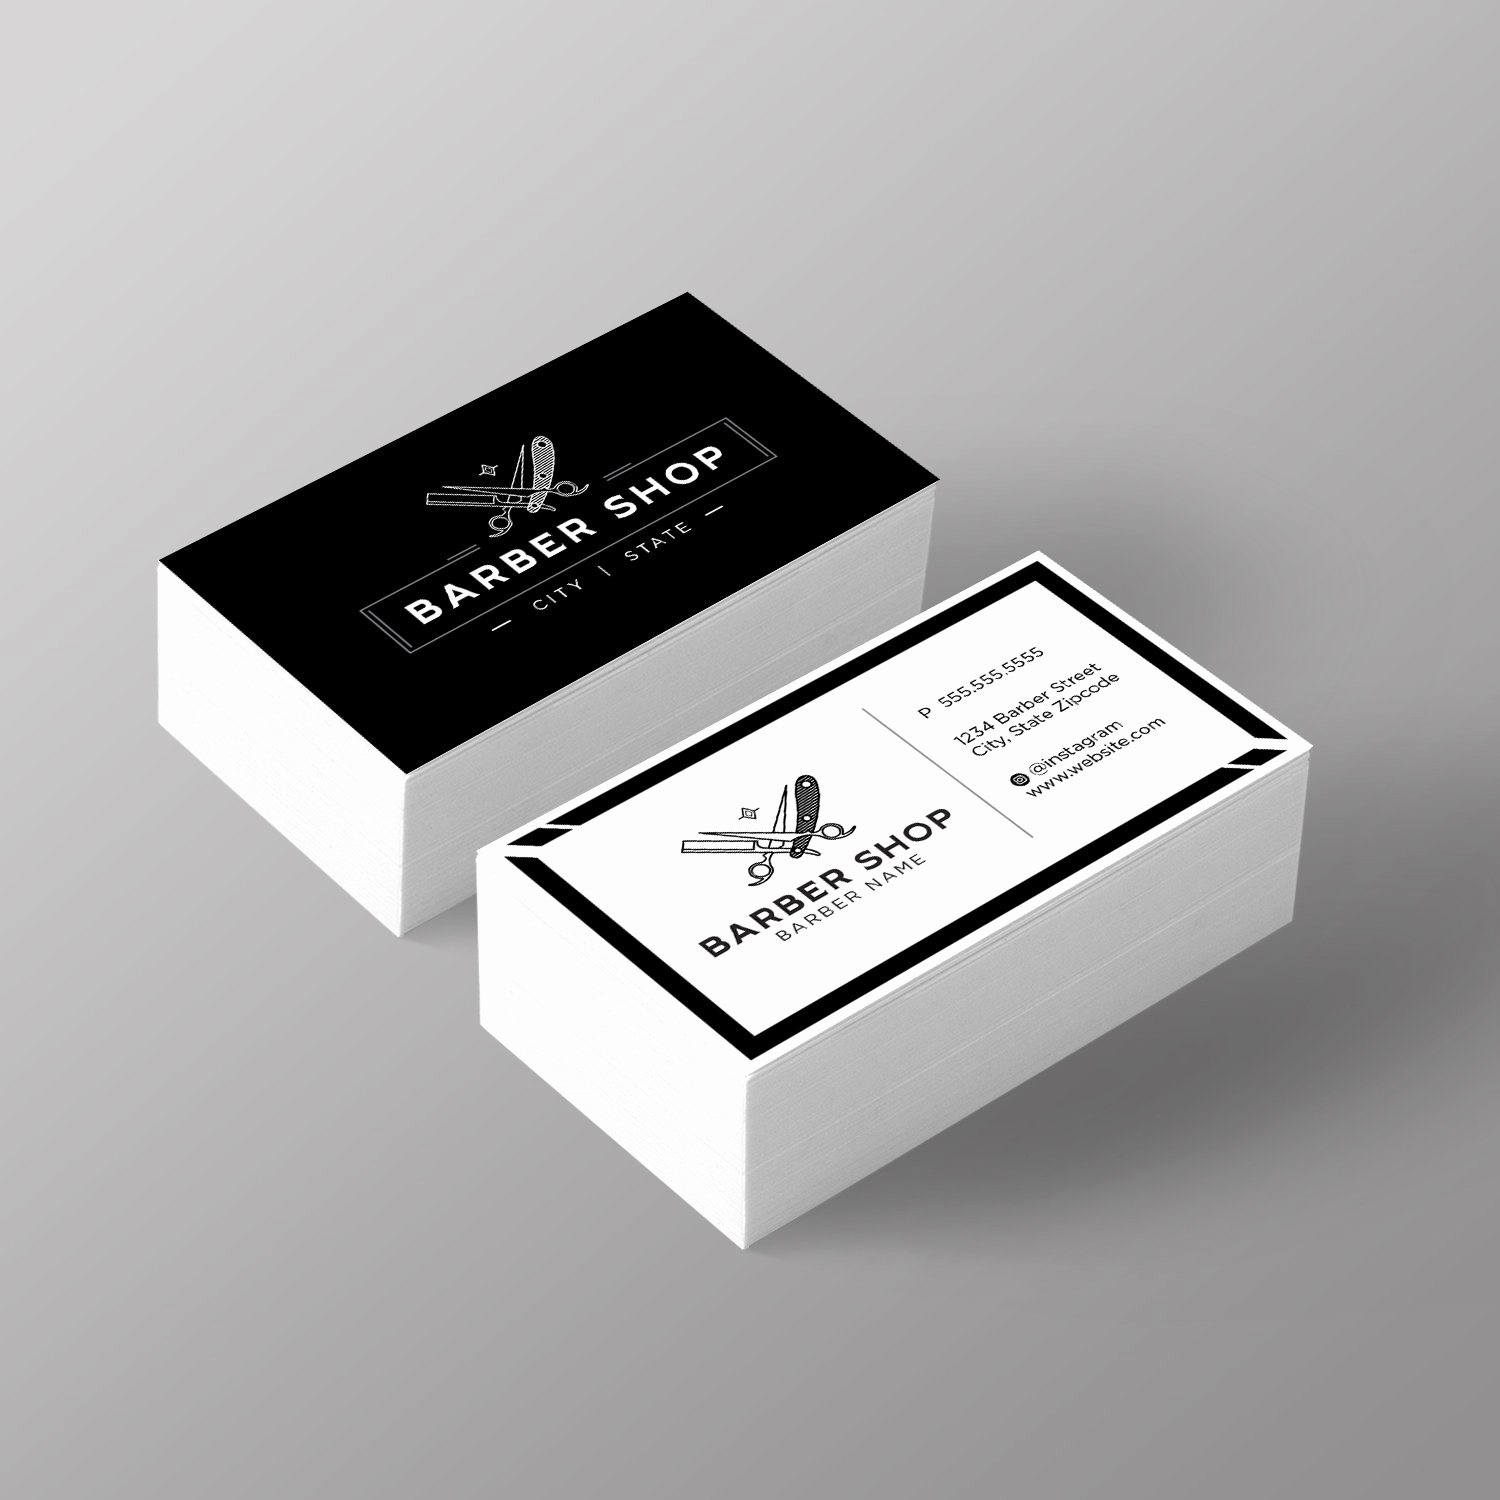 Barber Business Card Template Beautiful top 27 Professional Barber Business Cards Tips & Examples